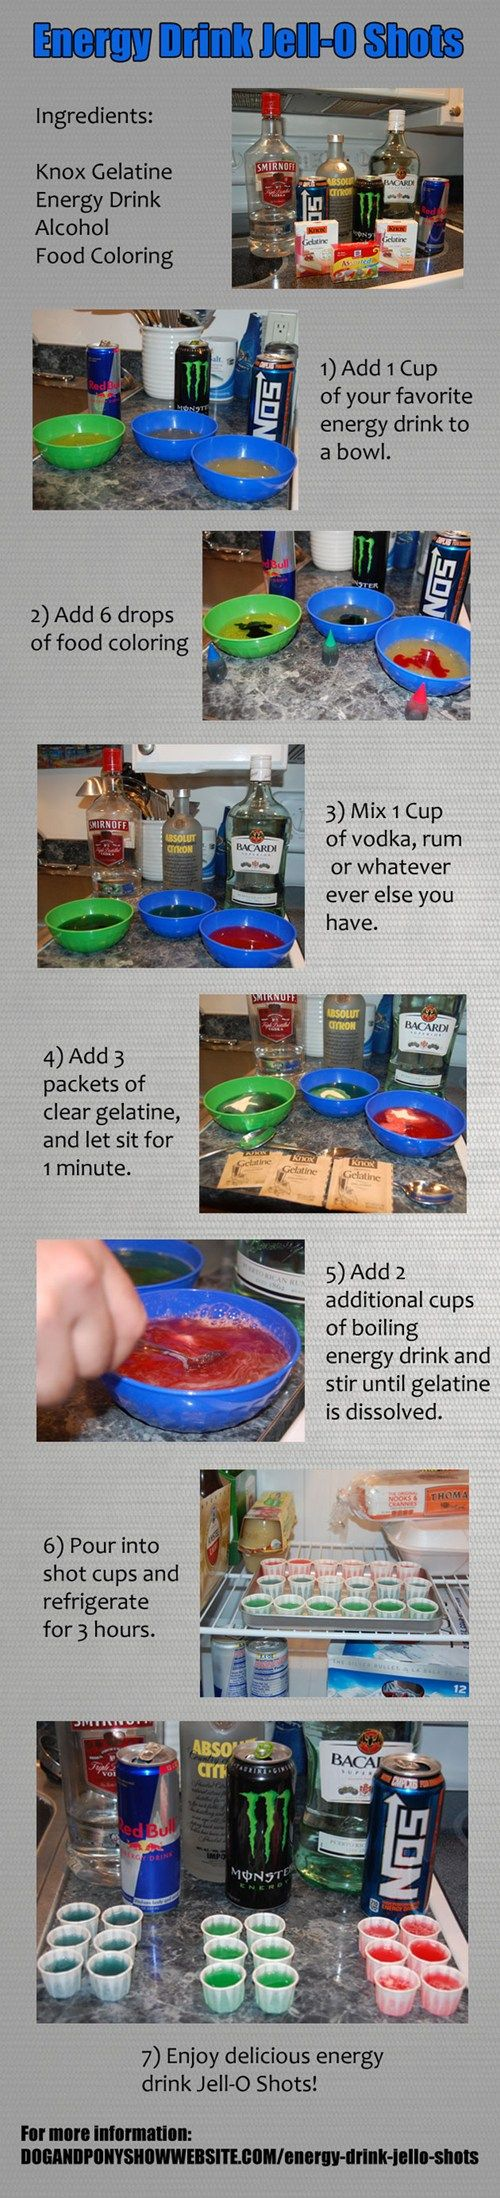 How To Make Red Bull Jell-O Shots - omg sylvia!!! Max would freak. Lol!